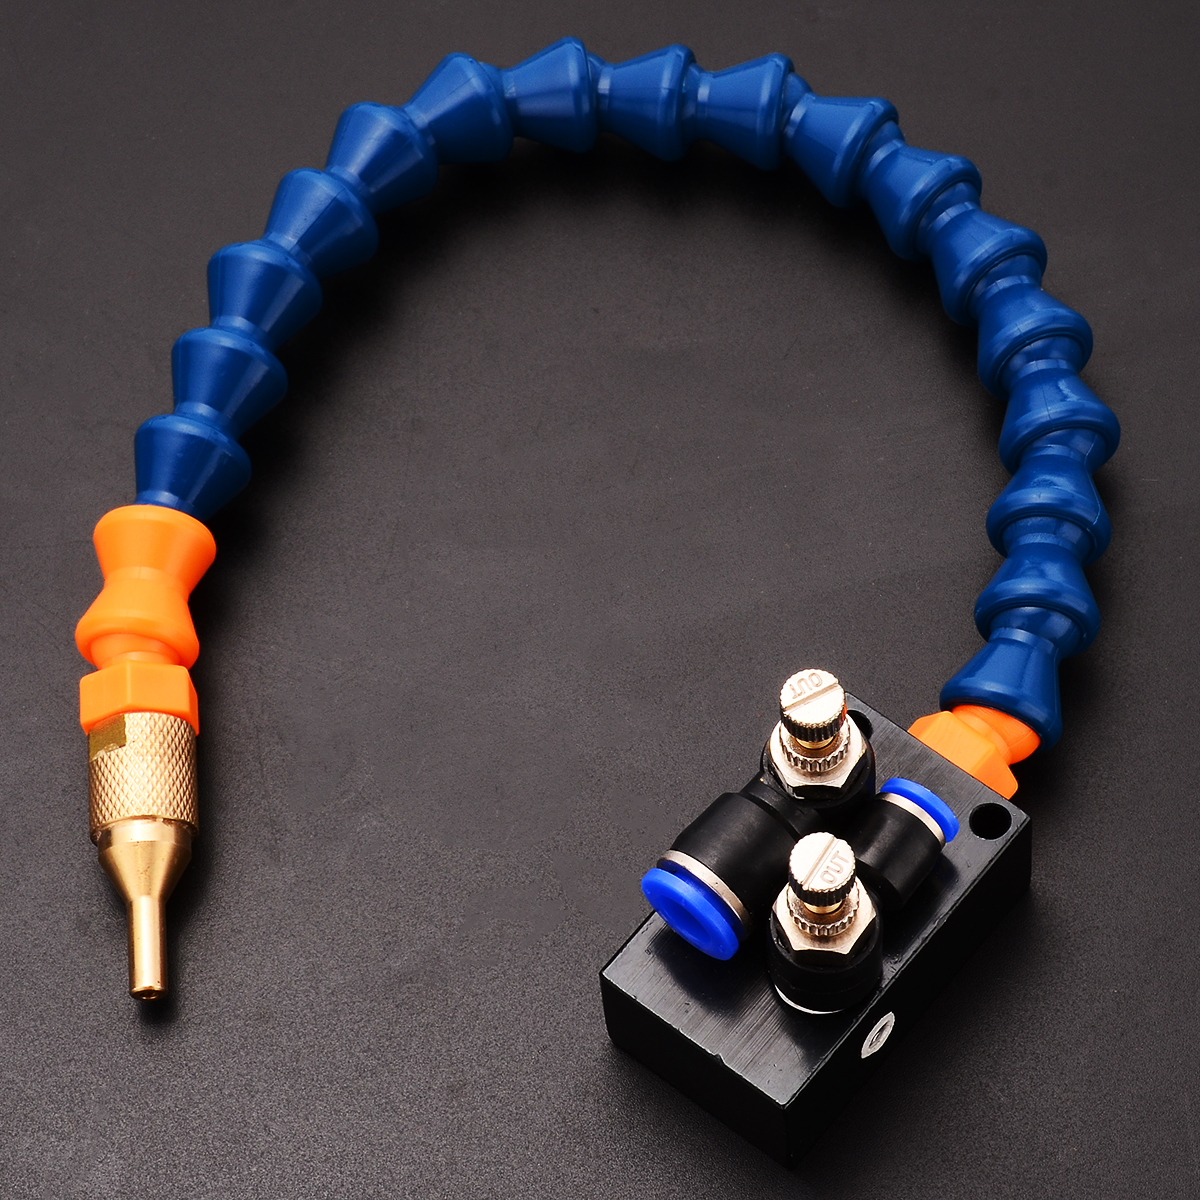 1pc Mist Coolant Lubrication Spray System High Quality Mist Coolant System For 8mm Air Pipe CNC Lathe Milling Drill1pc Mist Coolant Lubrication Spray System High Quality Mist Coolant System For 8mm Air Pipe CNC Lathe Milling Drill